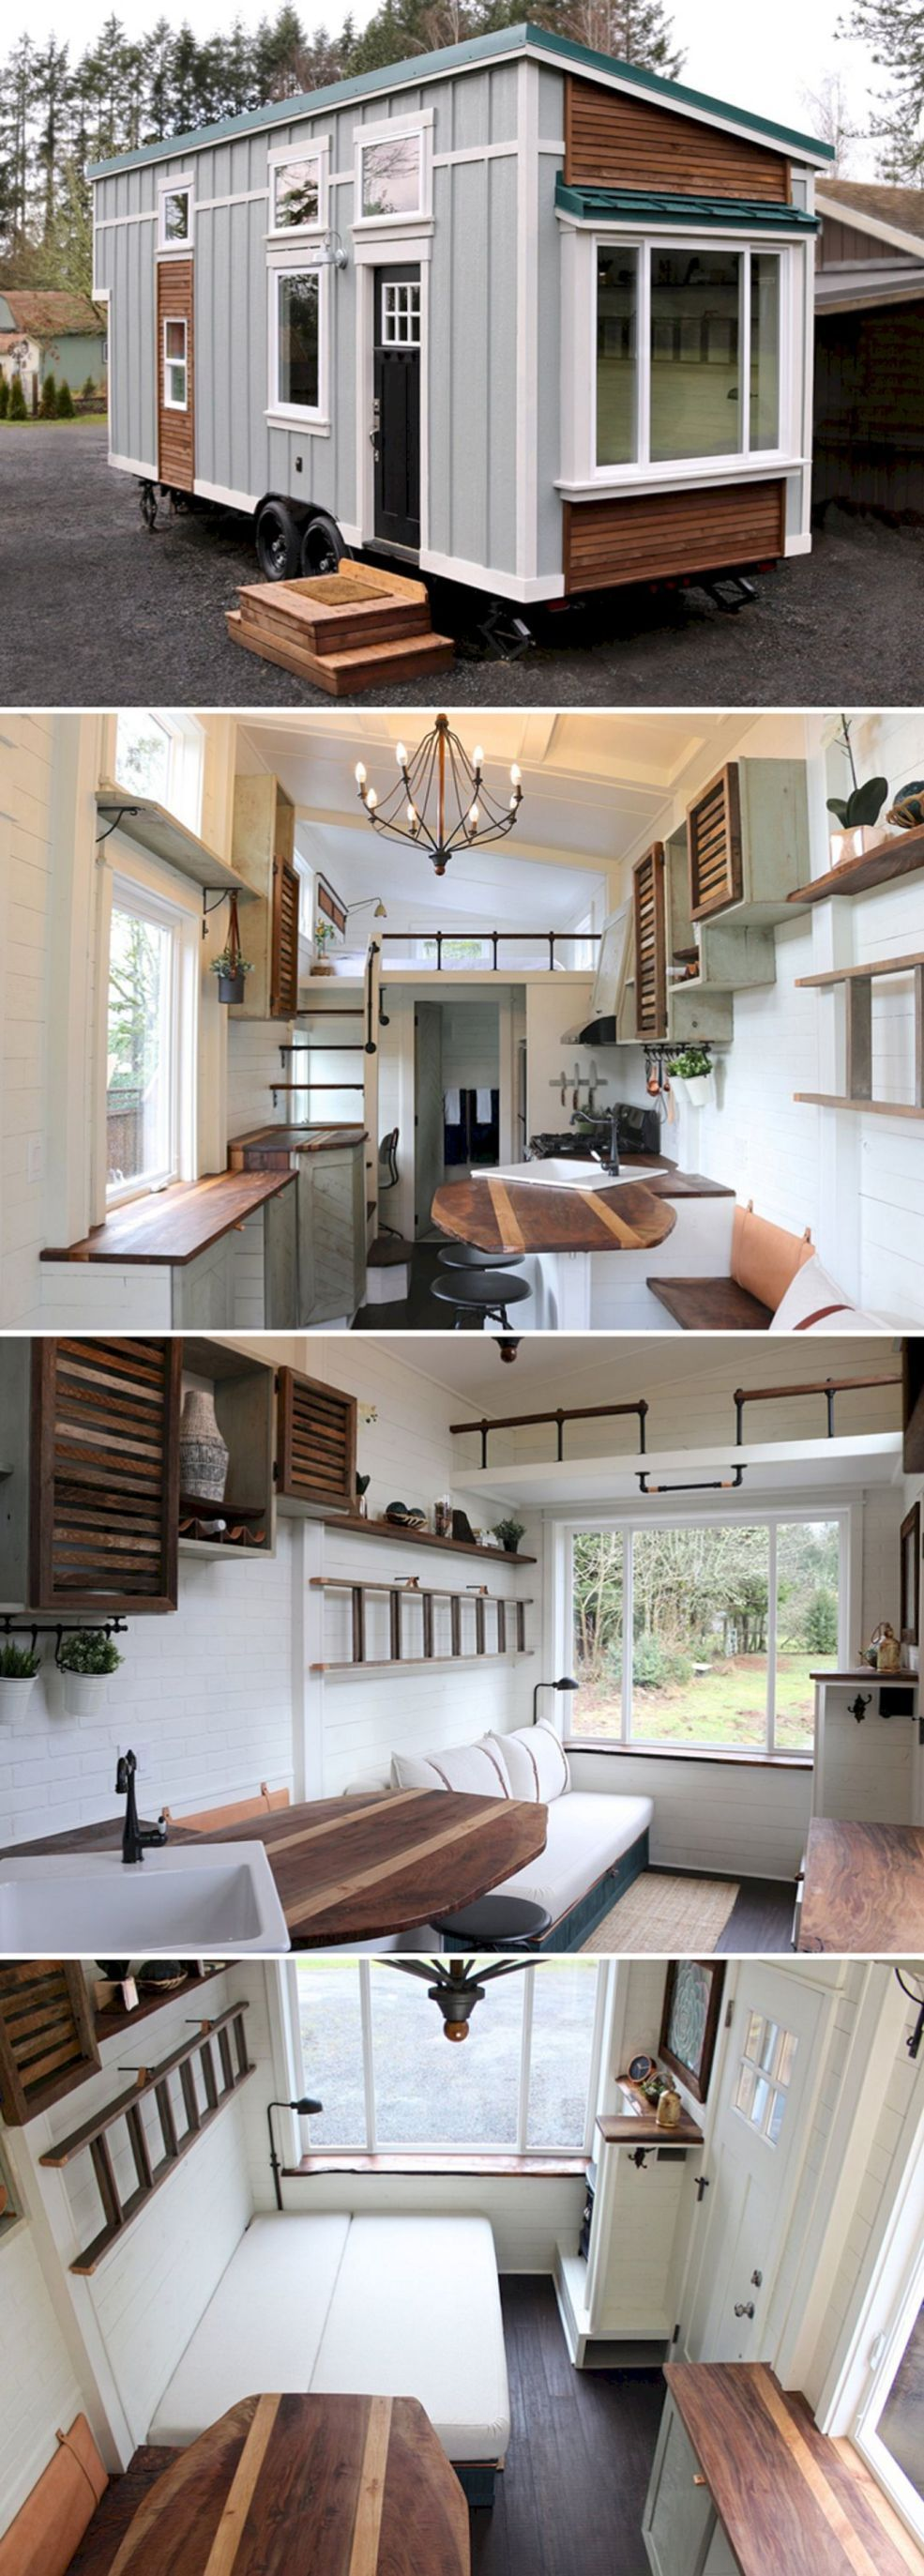 Marvelous And Impressive Tiny Houses Design That Maximize Style Function No 54